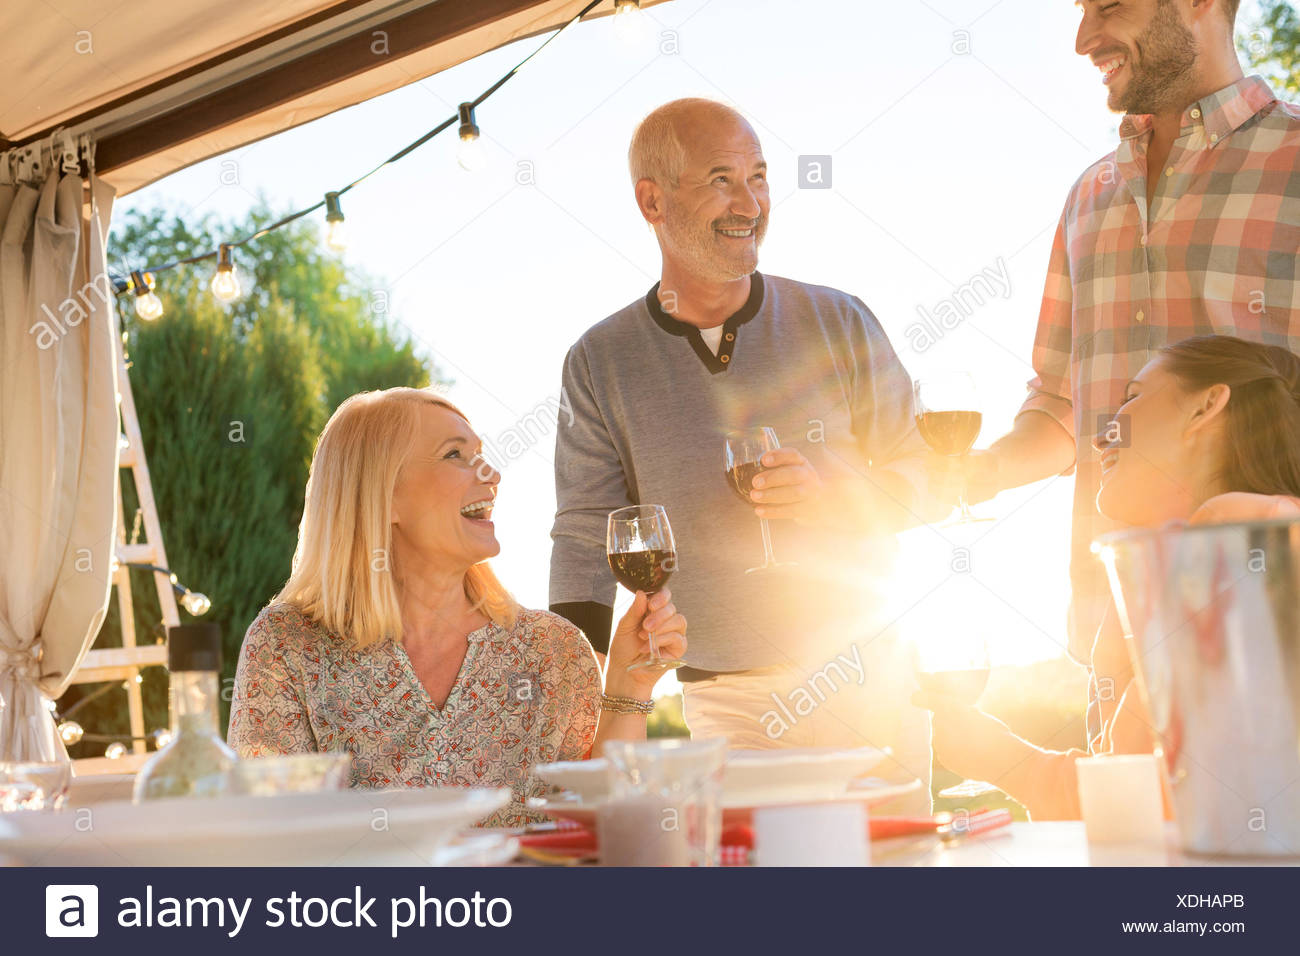 Family drinking wine at sunny patio table - Stock Image